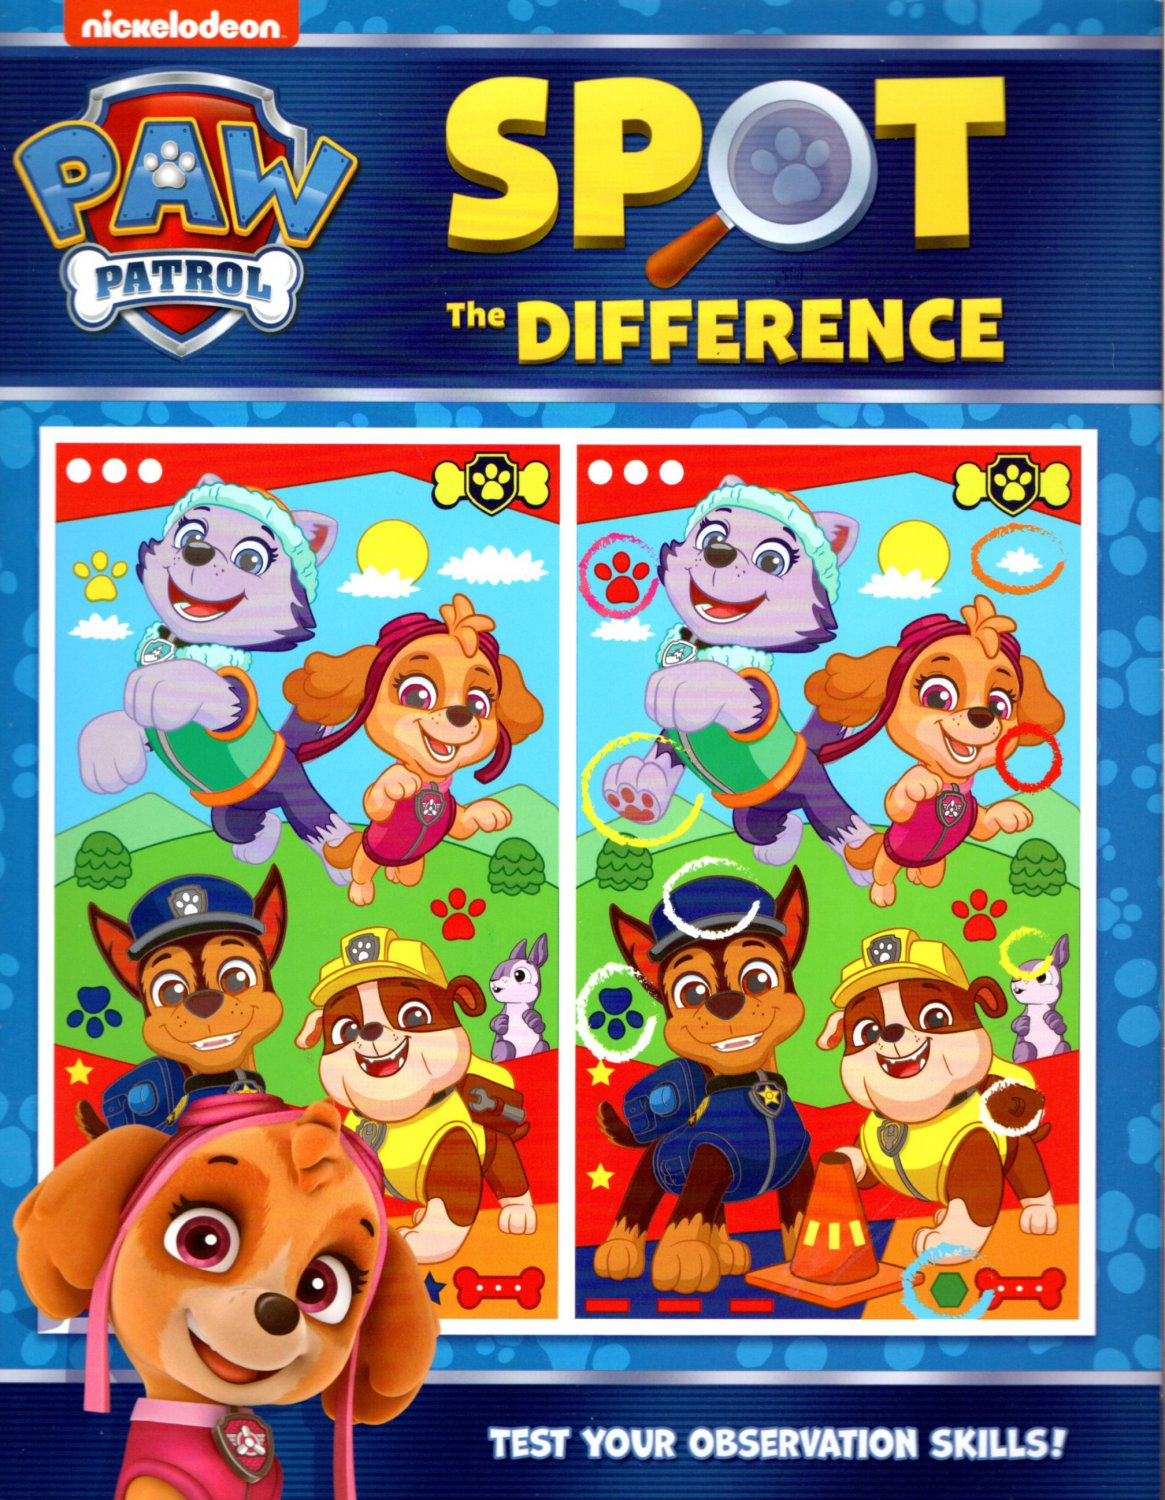 Nickelodeon Paw Patrol - Spot the Difference - Test Your Observation Skills!